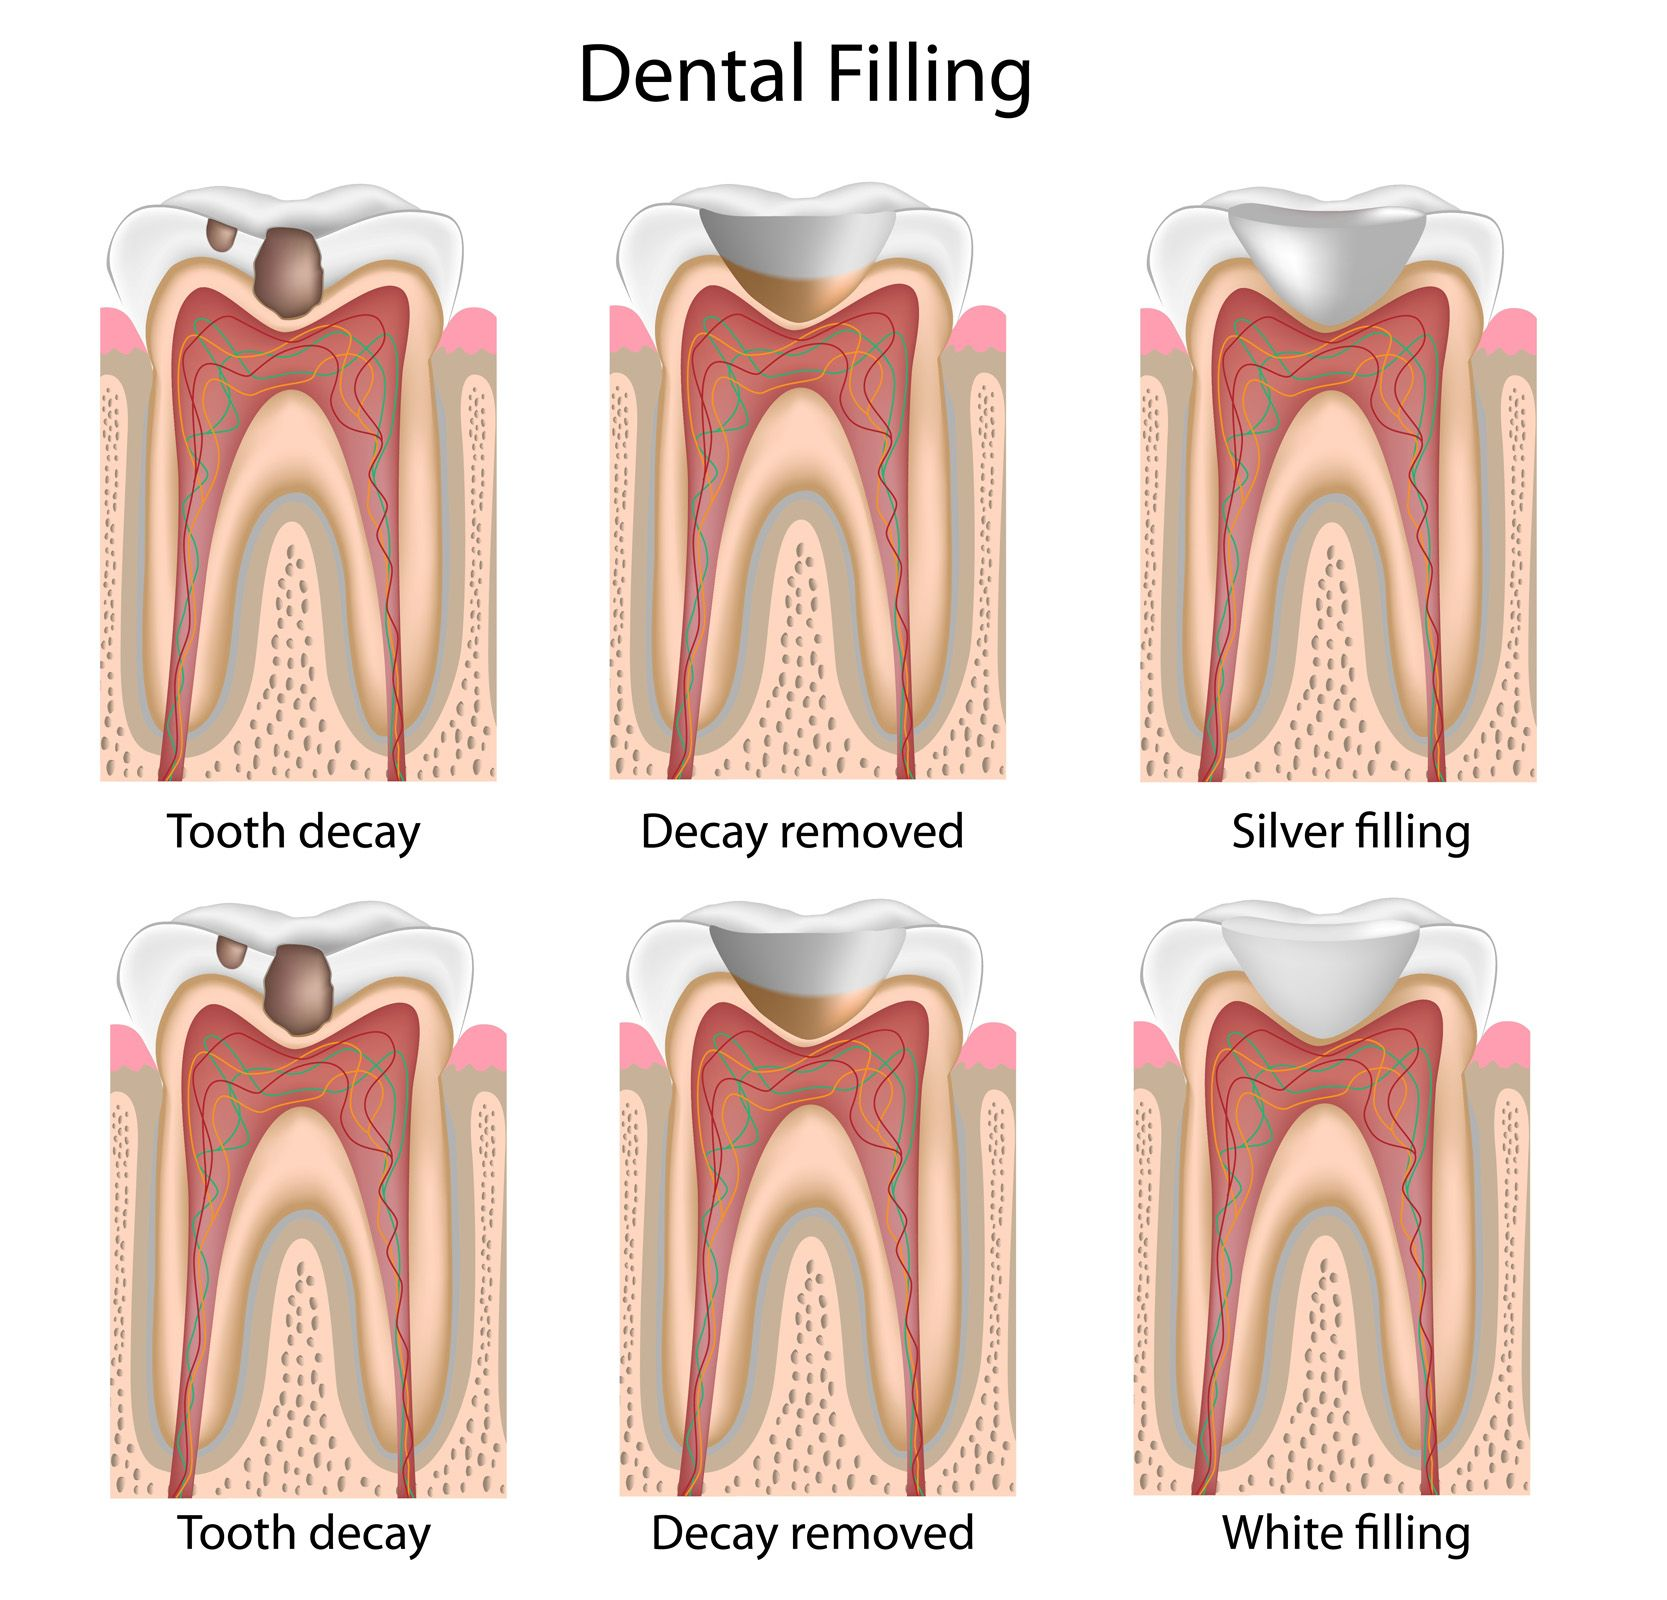 white fillings - dental procedure